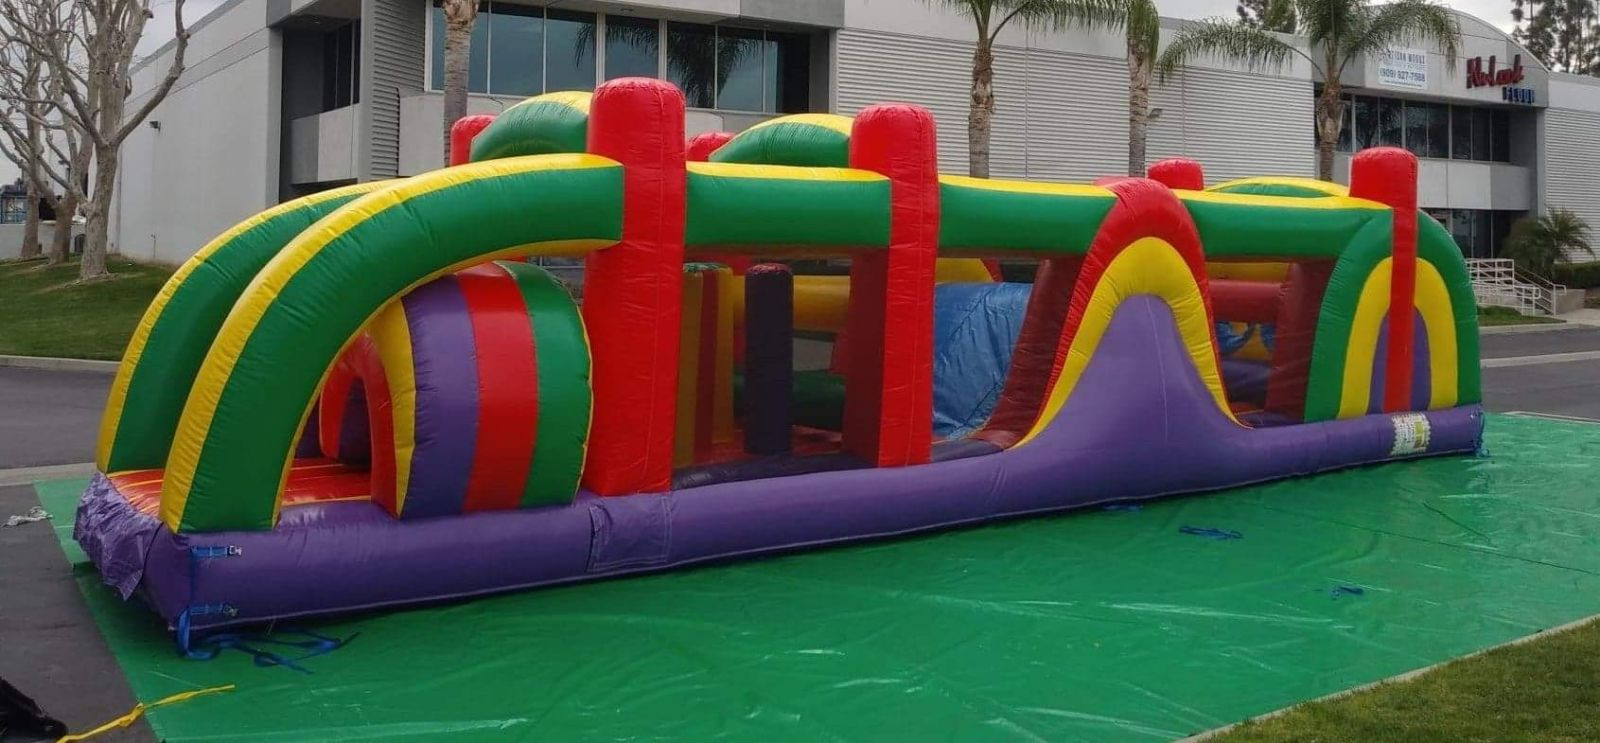 Obstacle Course Rental Los Angeles | Interactive Game Rentals